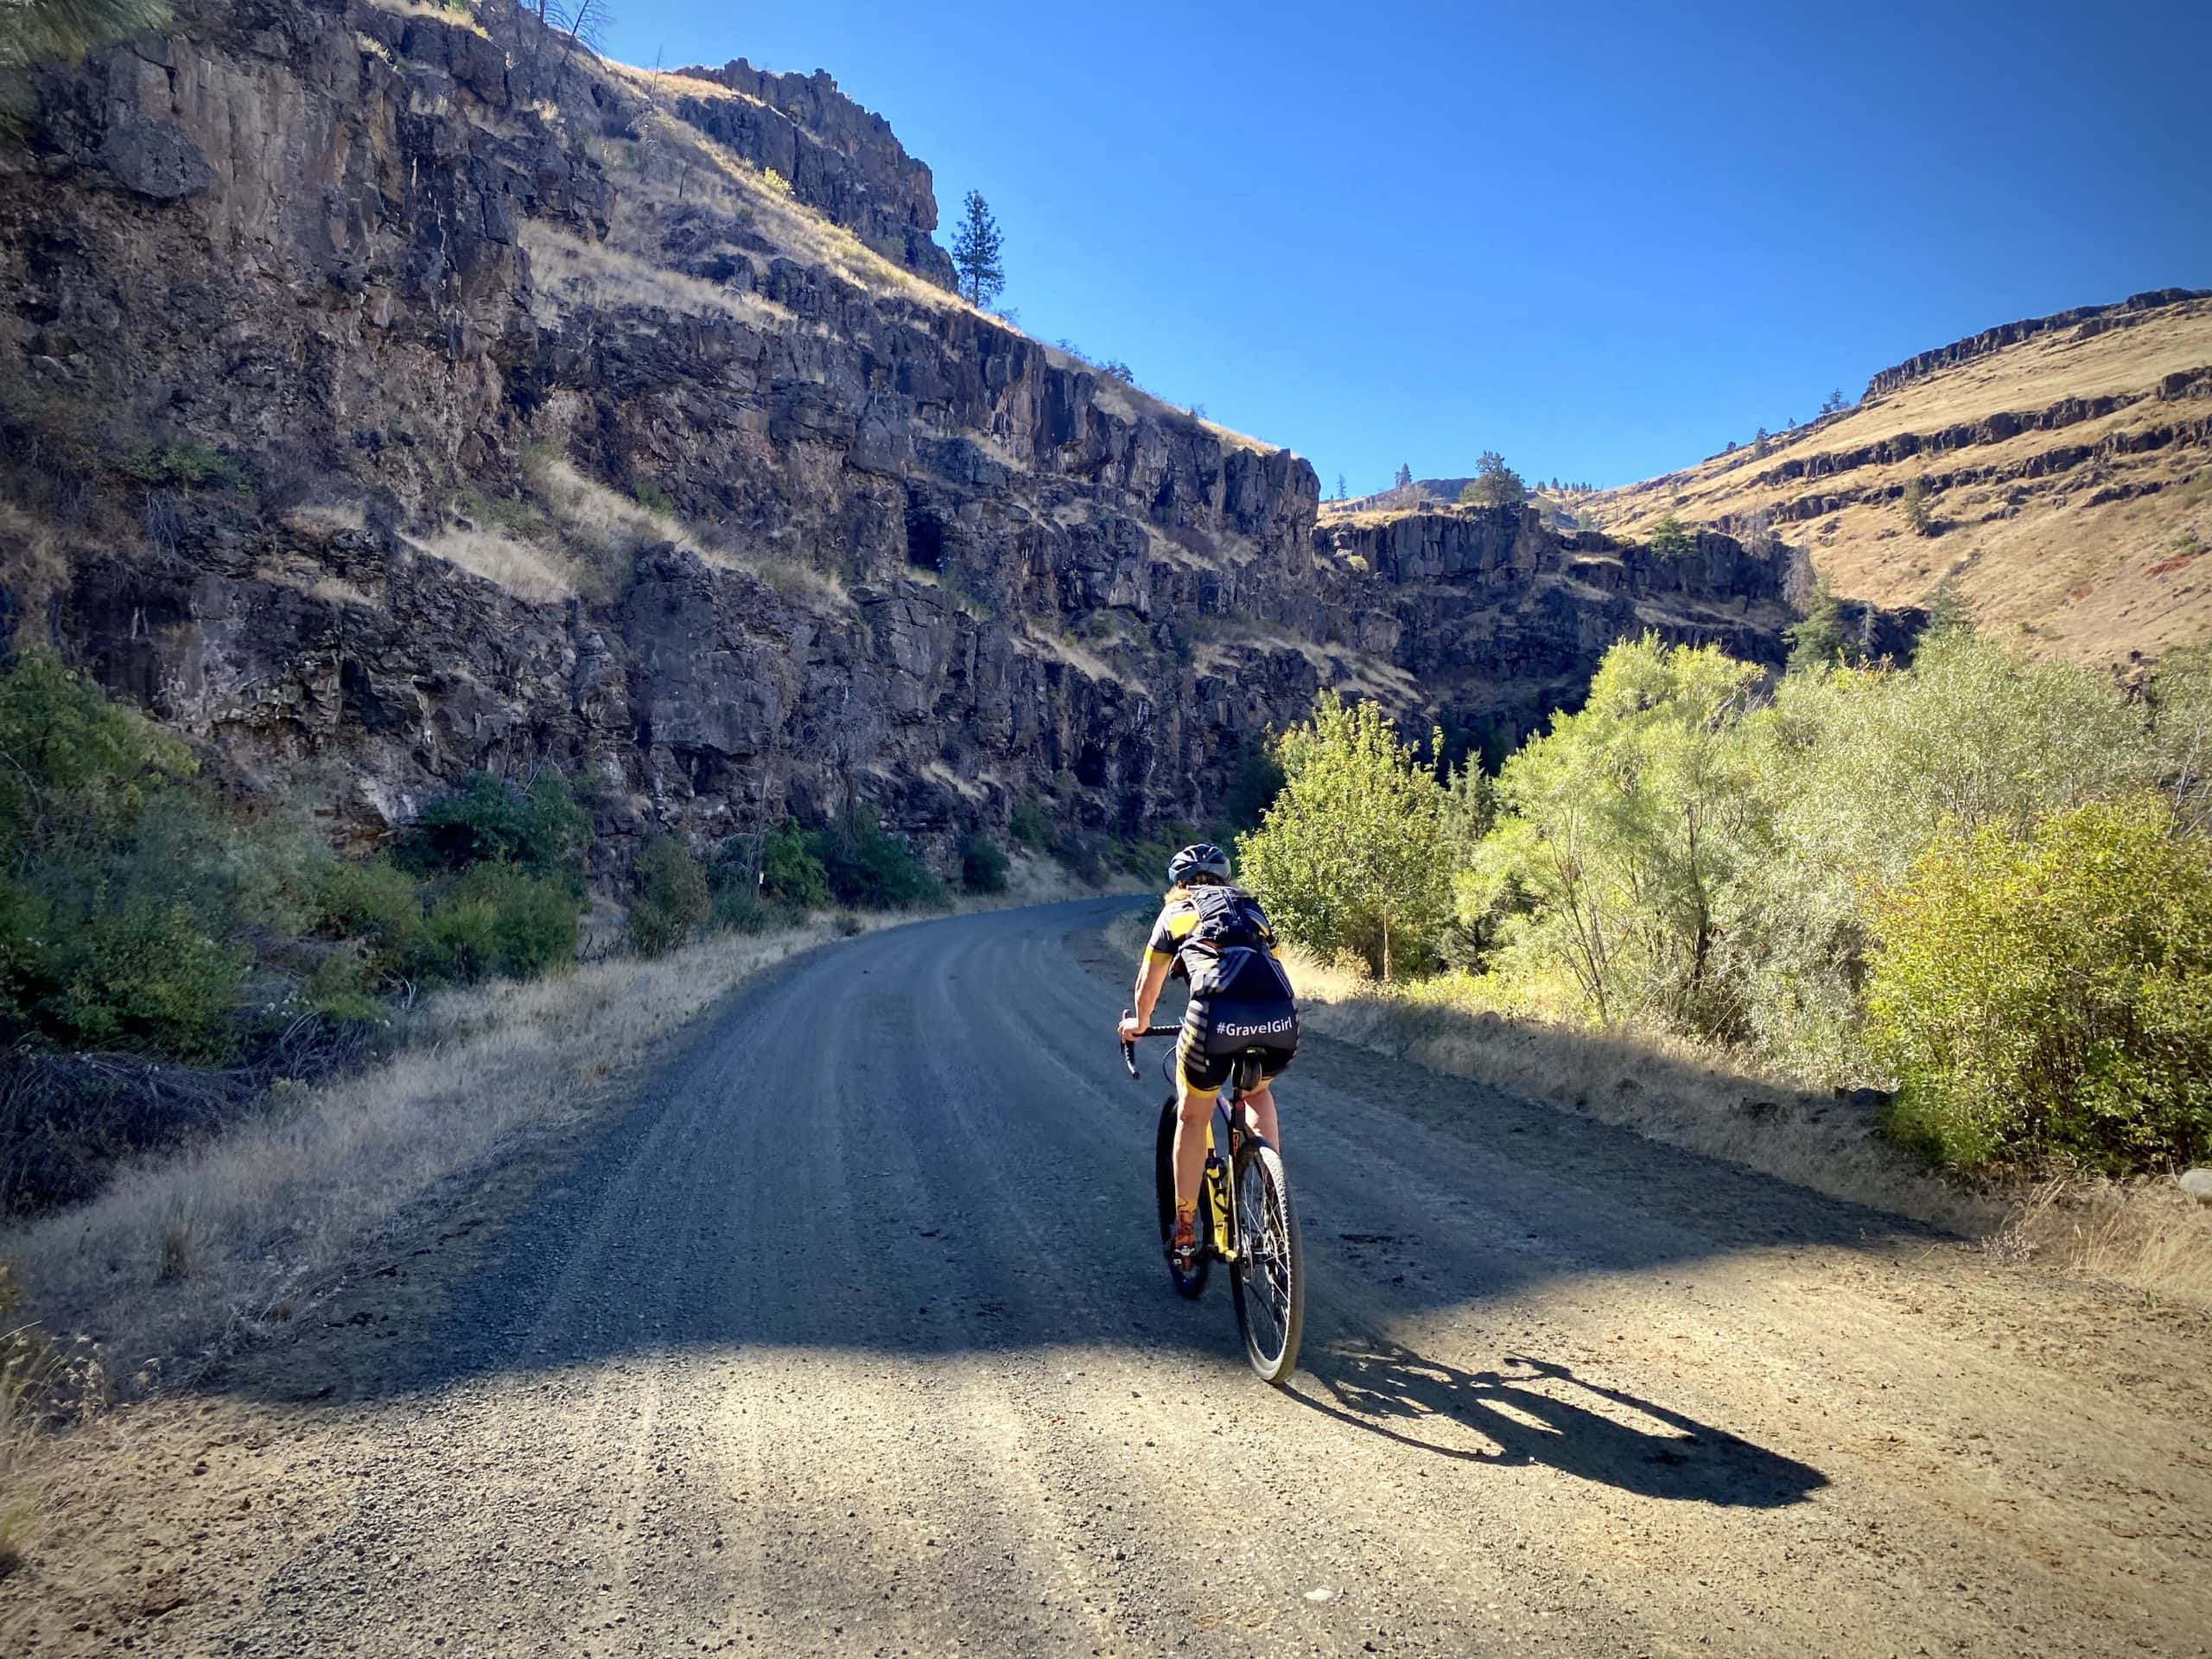 Gravel Girl riding into the Black Canyon section of the Murderers Creek gravel bike ride.